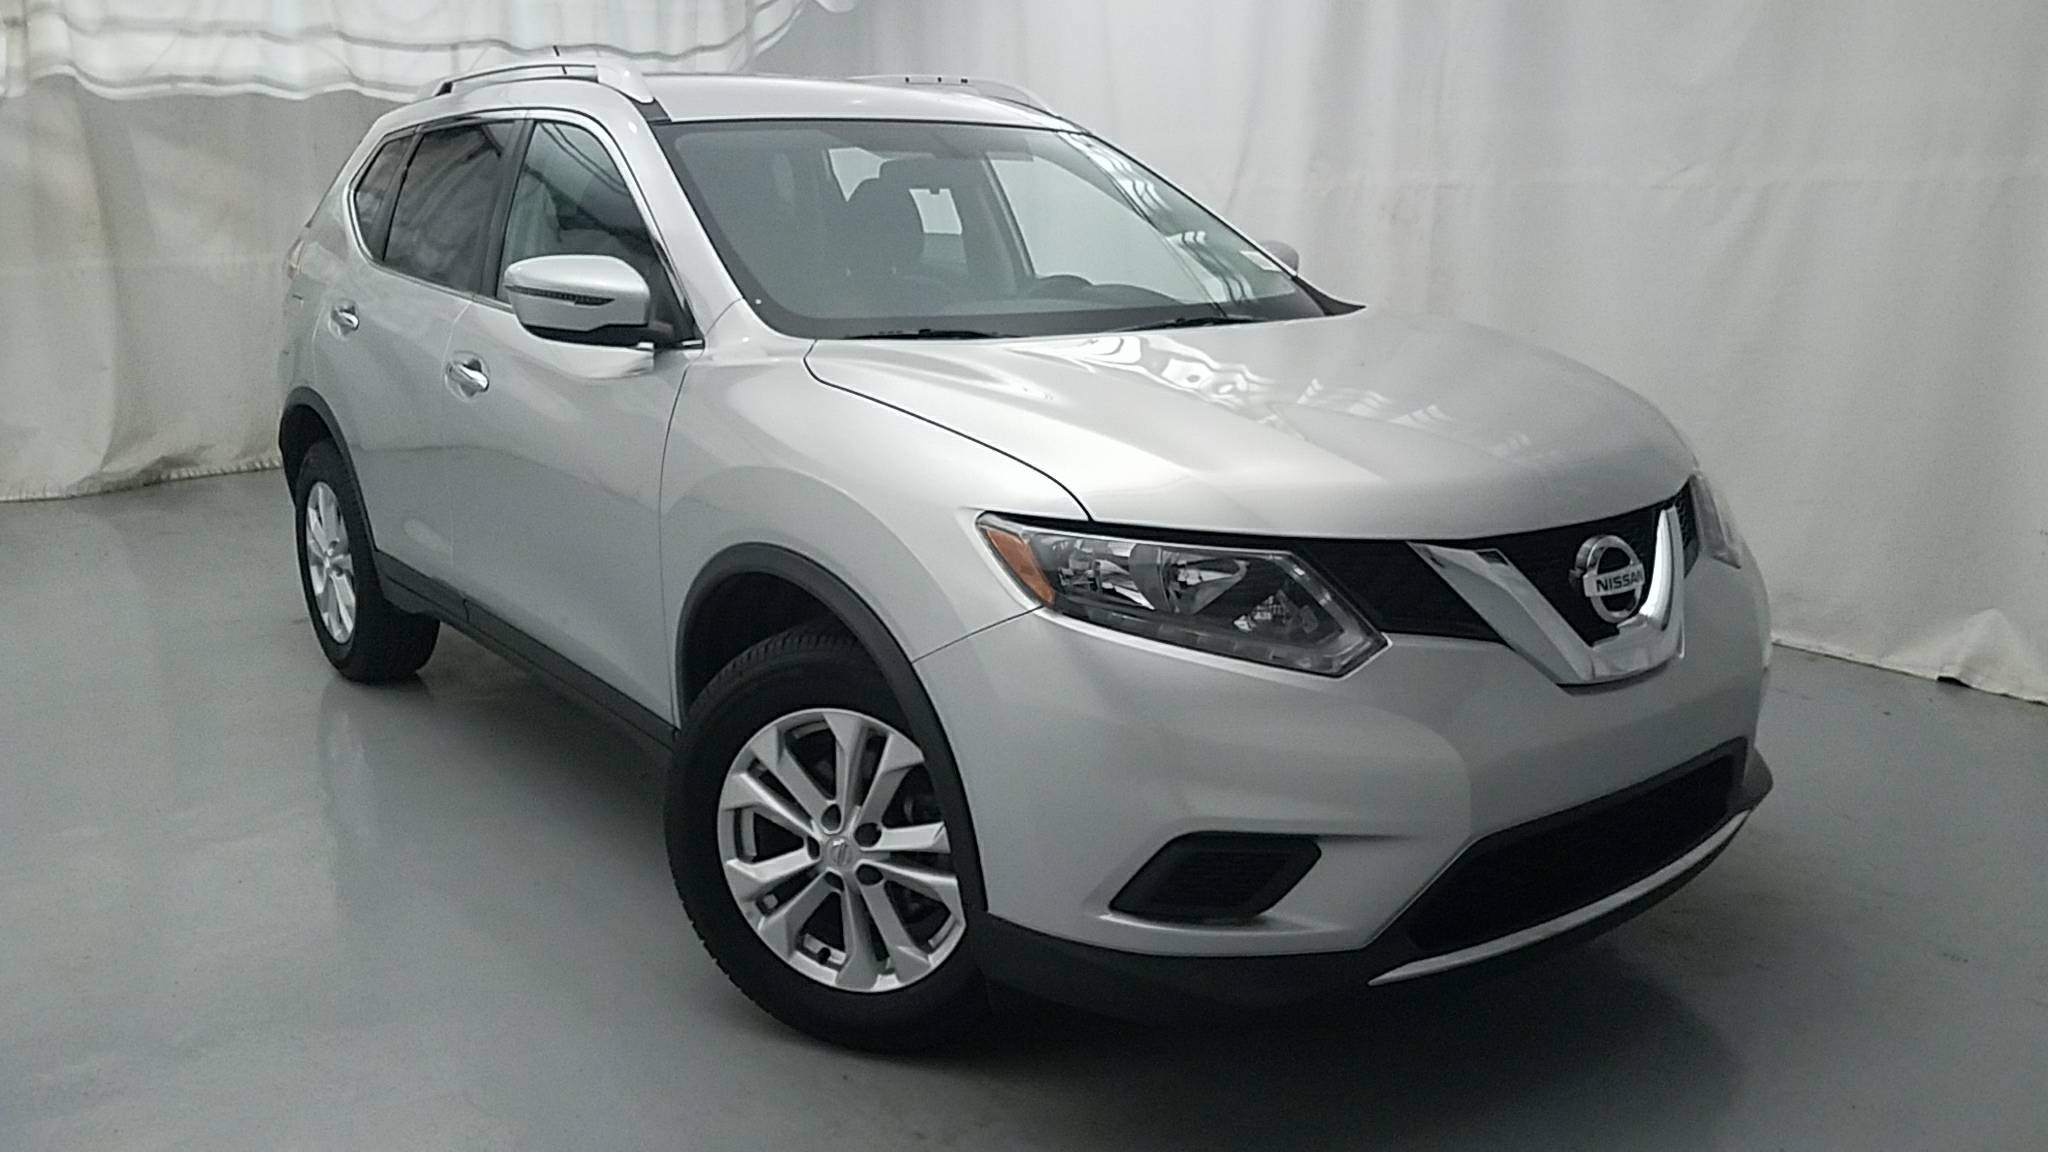 2016 Rogue Vehicles for Sale in Hammond LA